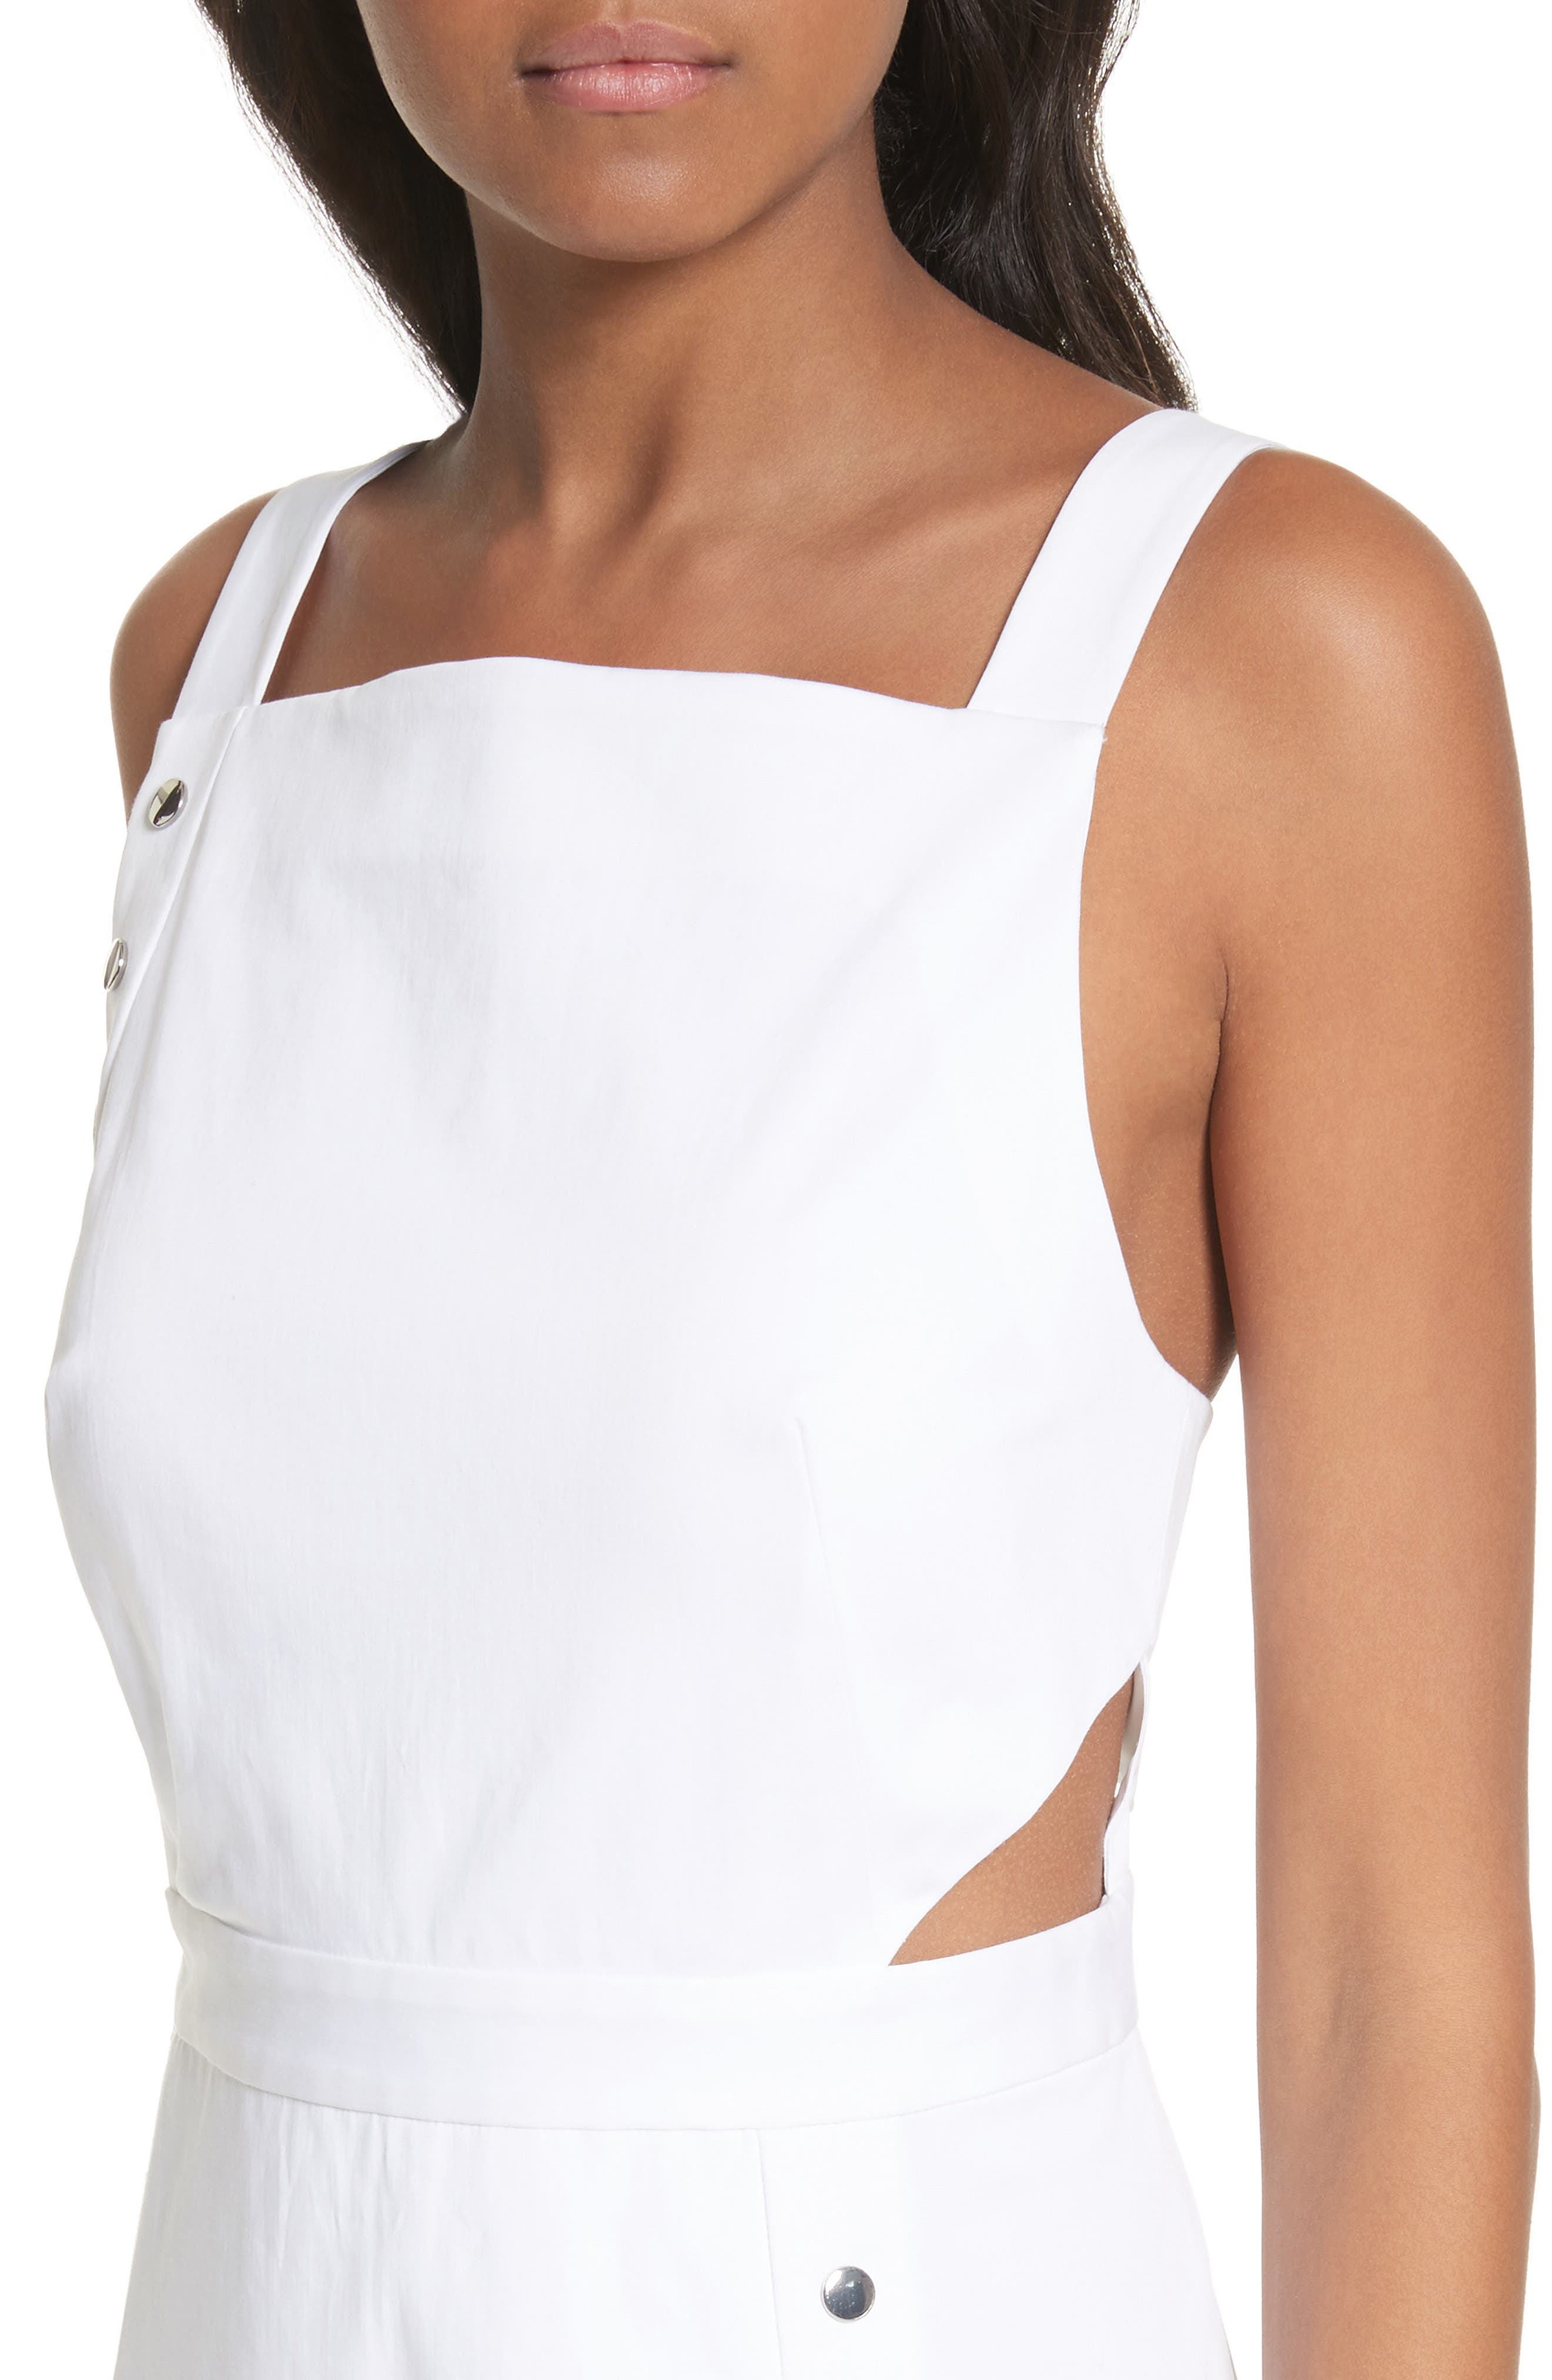 Crosby Snap Strappy Dress,                             Alternate thumbnail 4, color,                             100